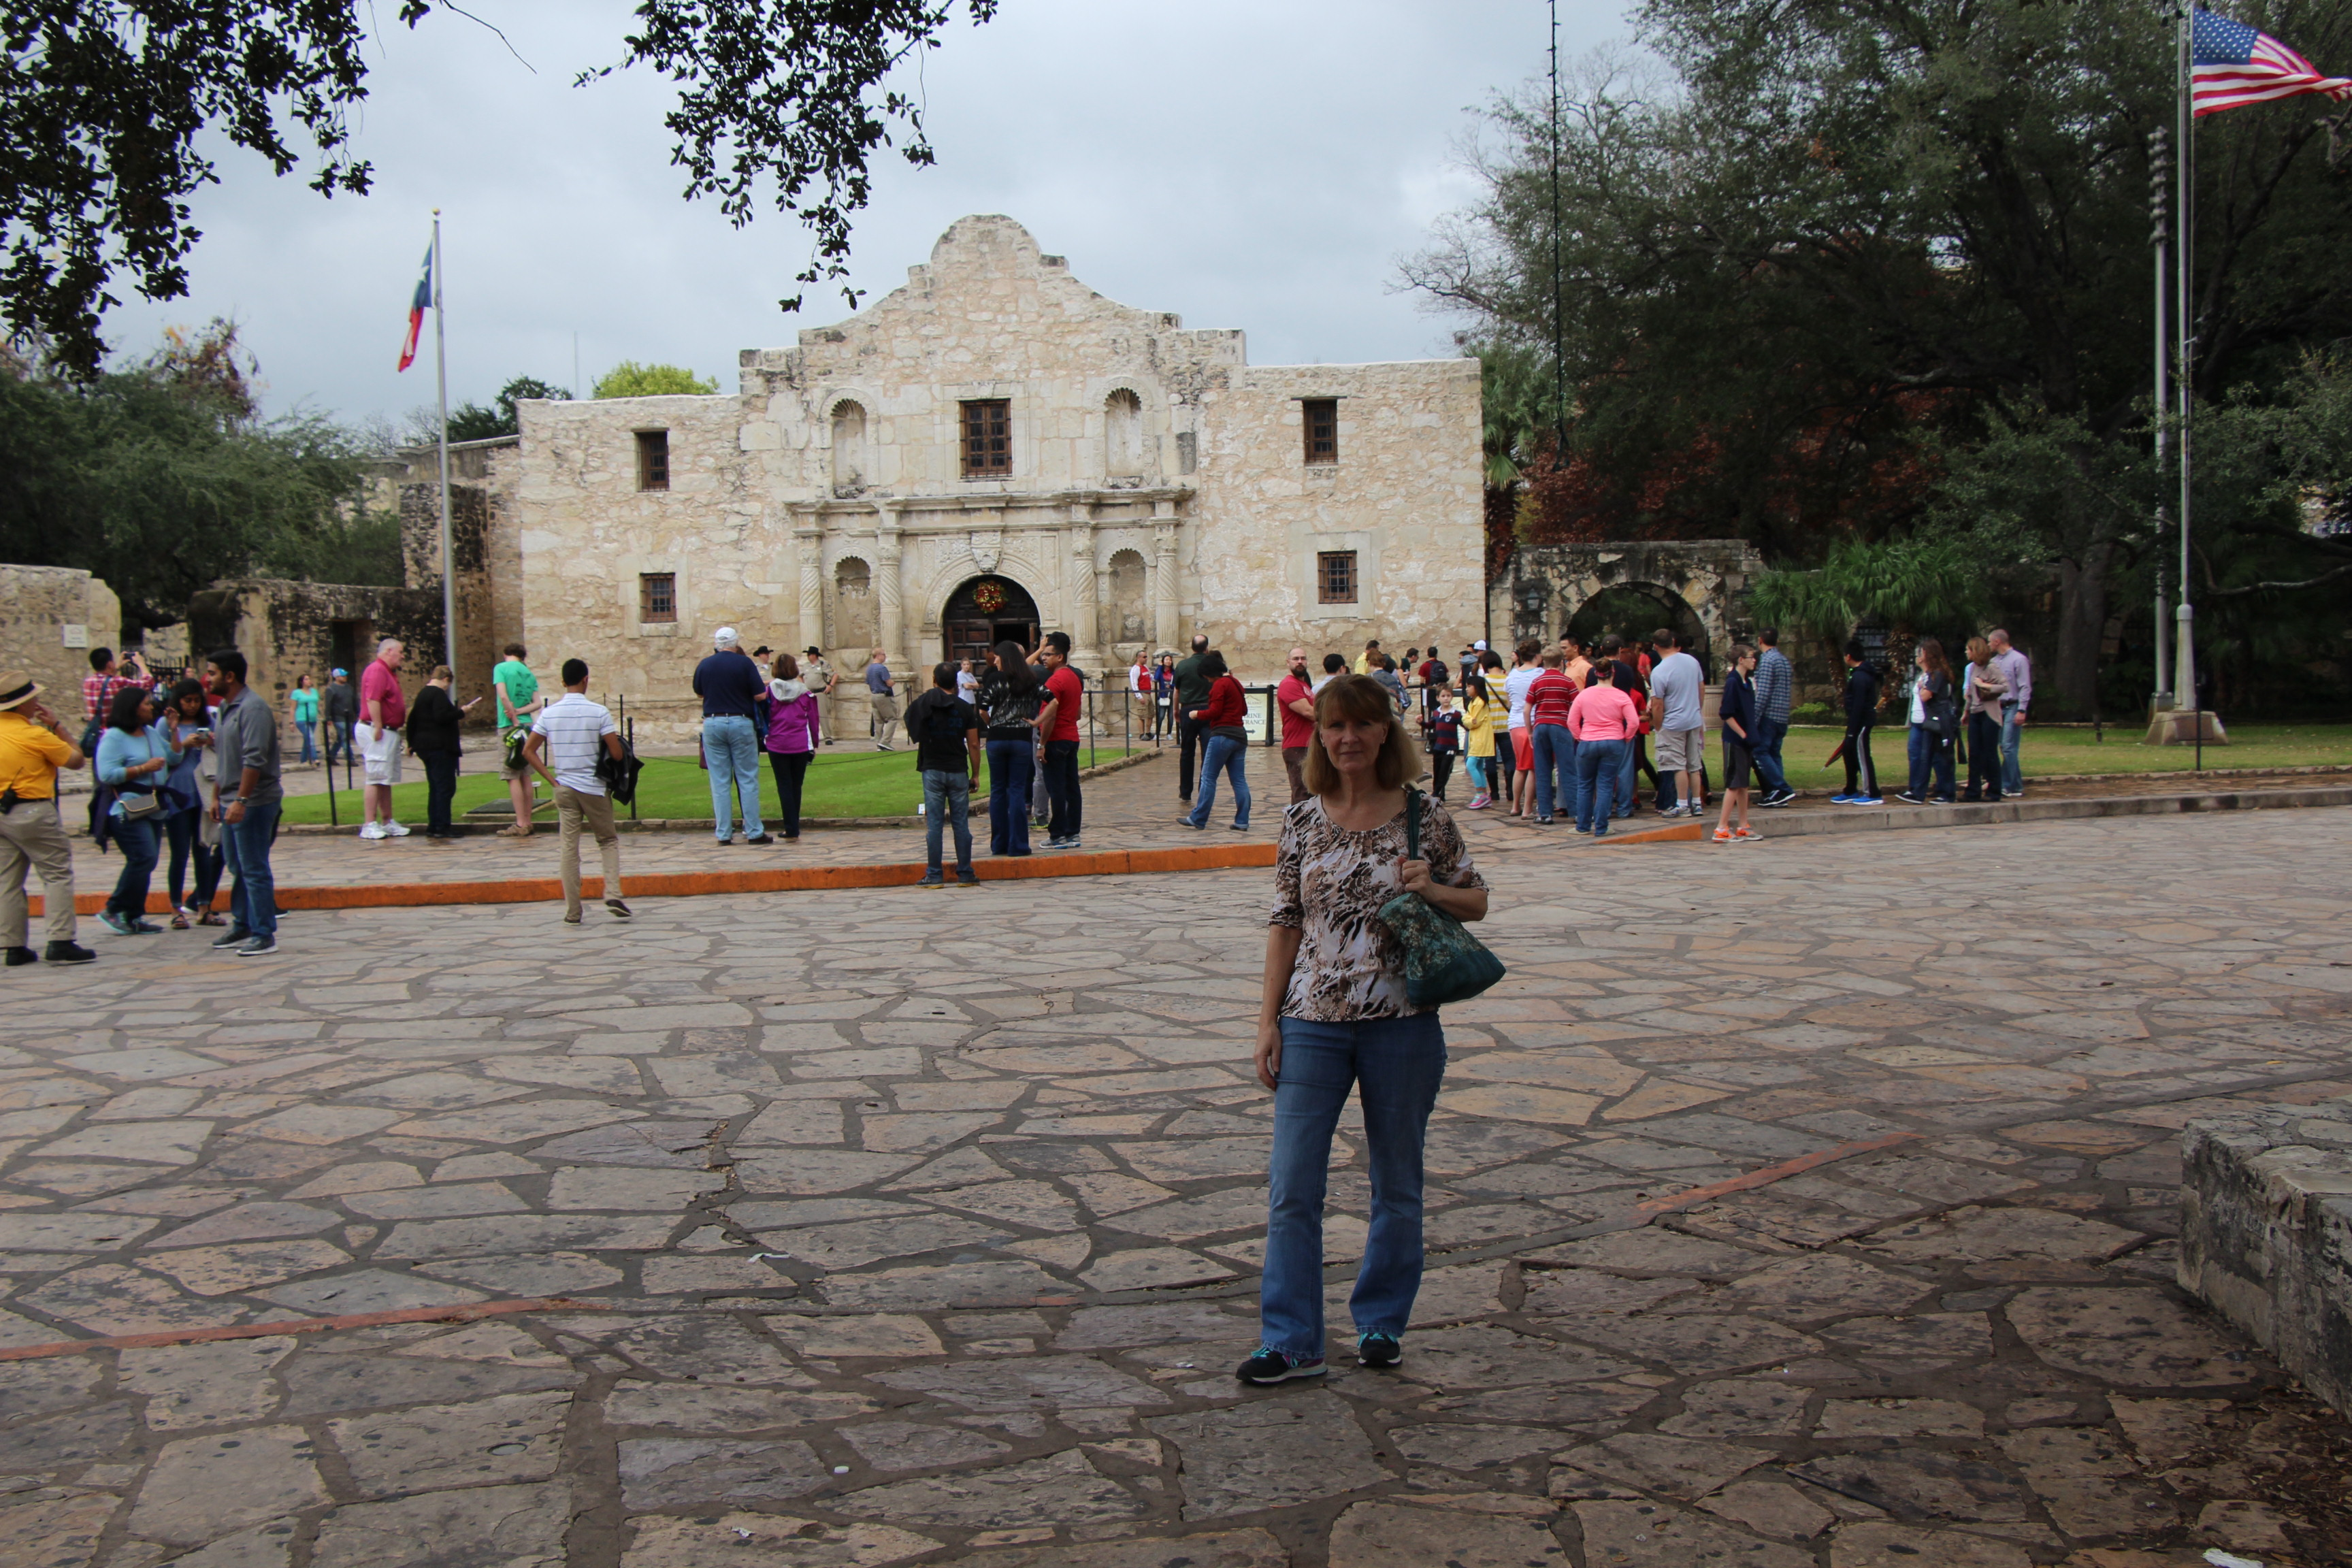 A woman stands near the Alamo in Texas